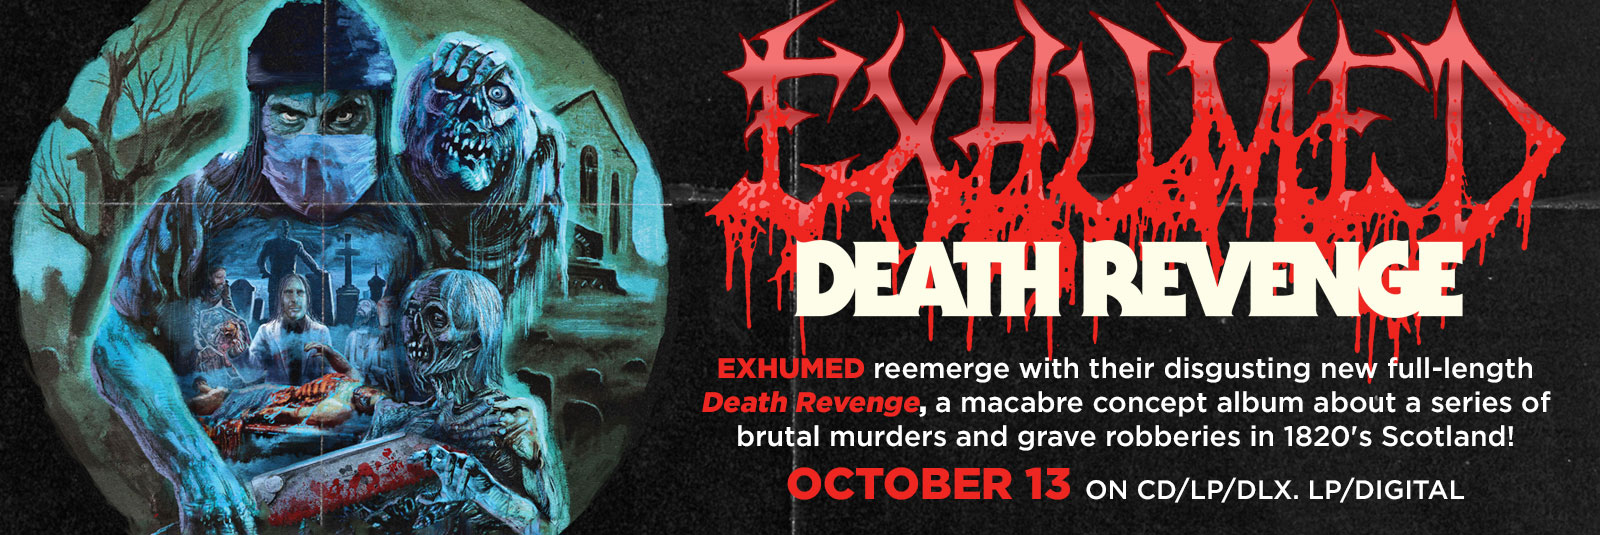 exhumed-death-revent